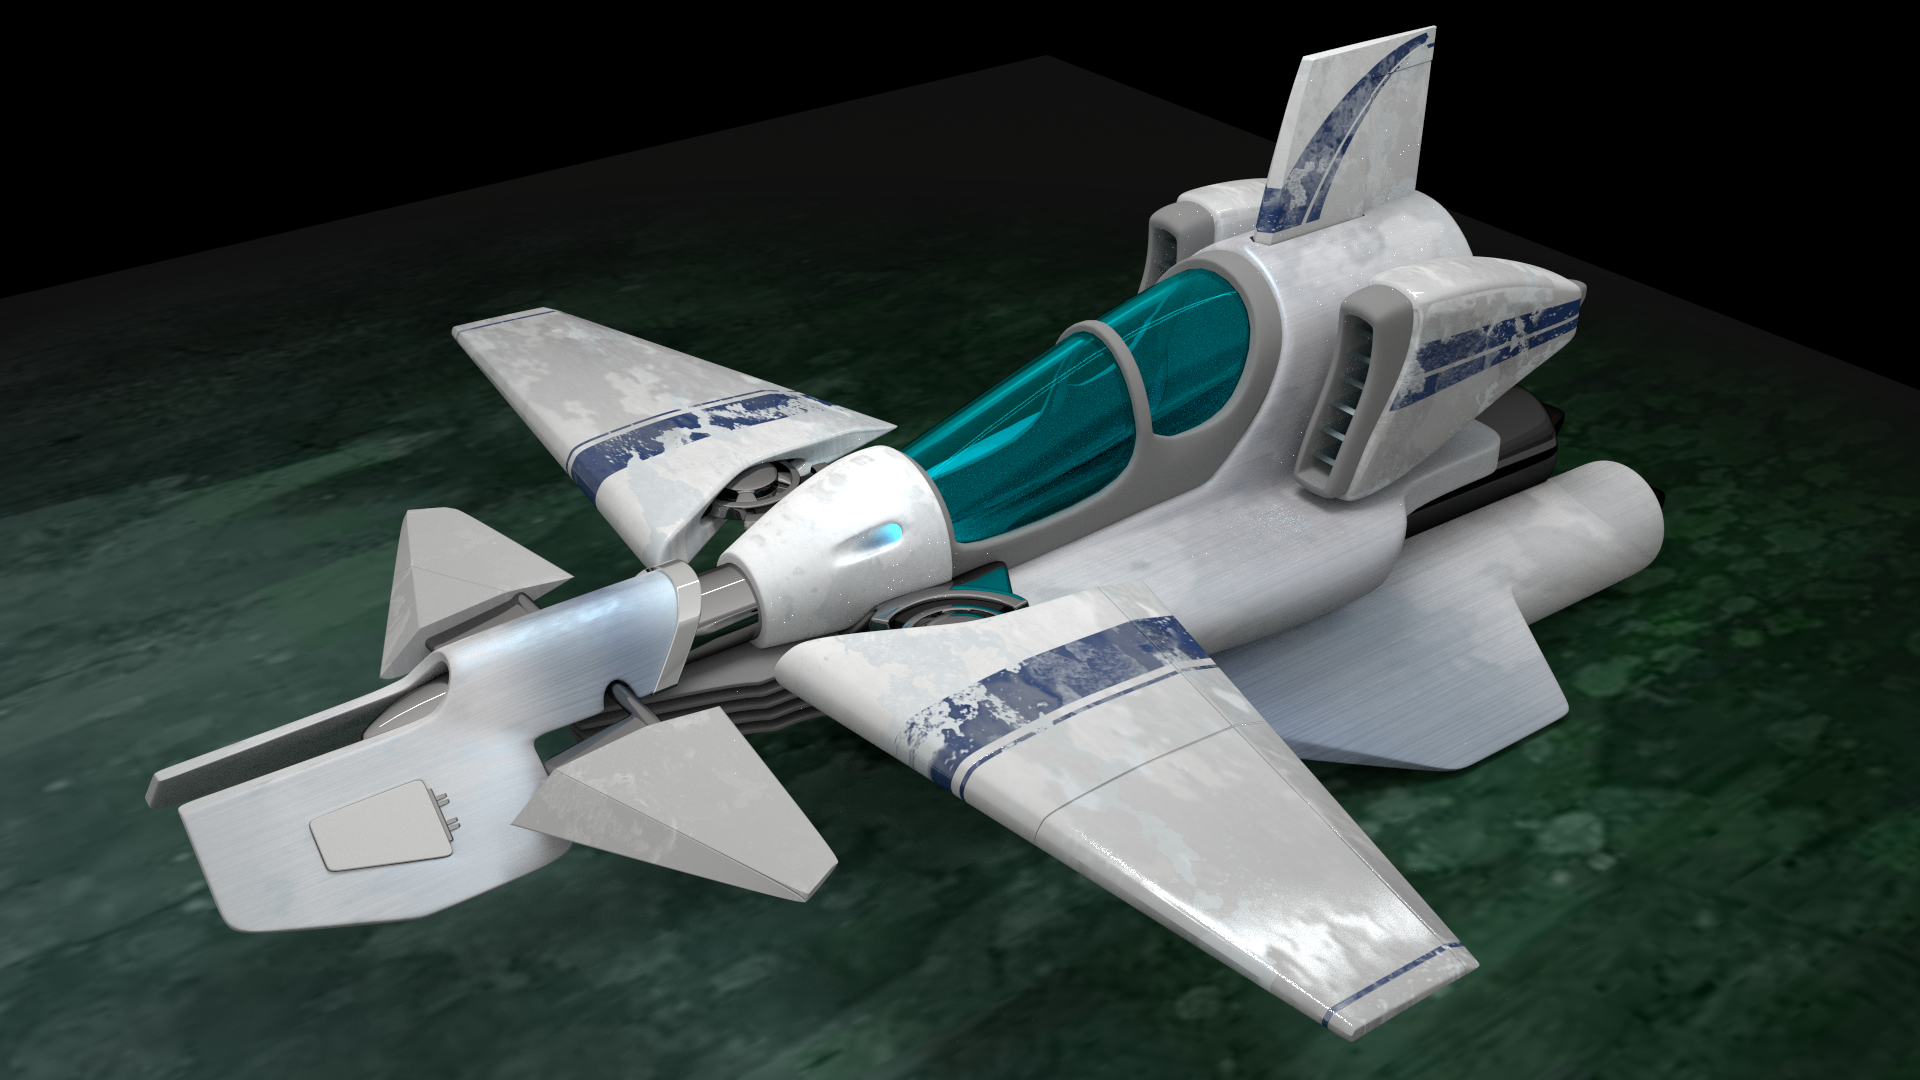 Ship 3D - My First Blender project. More work needed on Shaders and Lighting